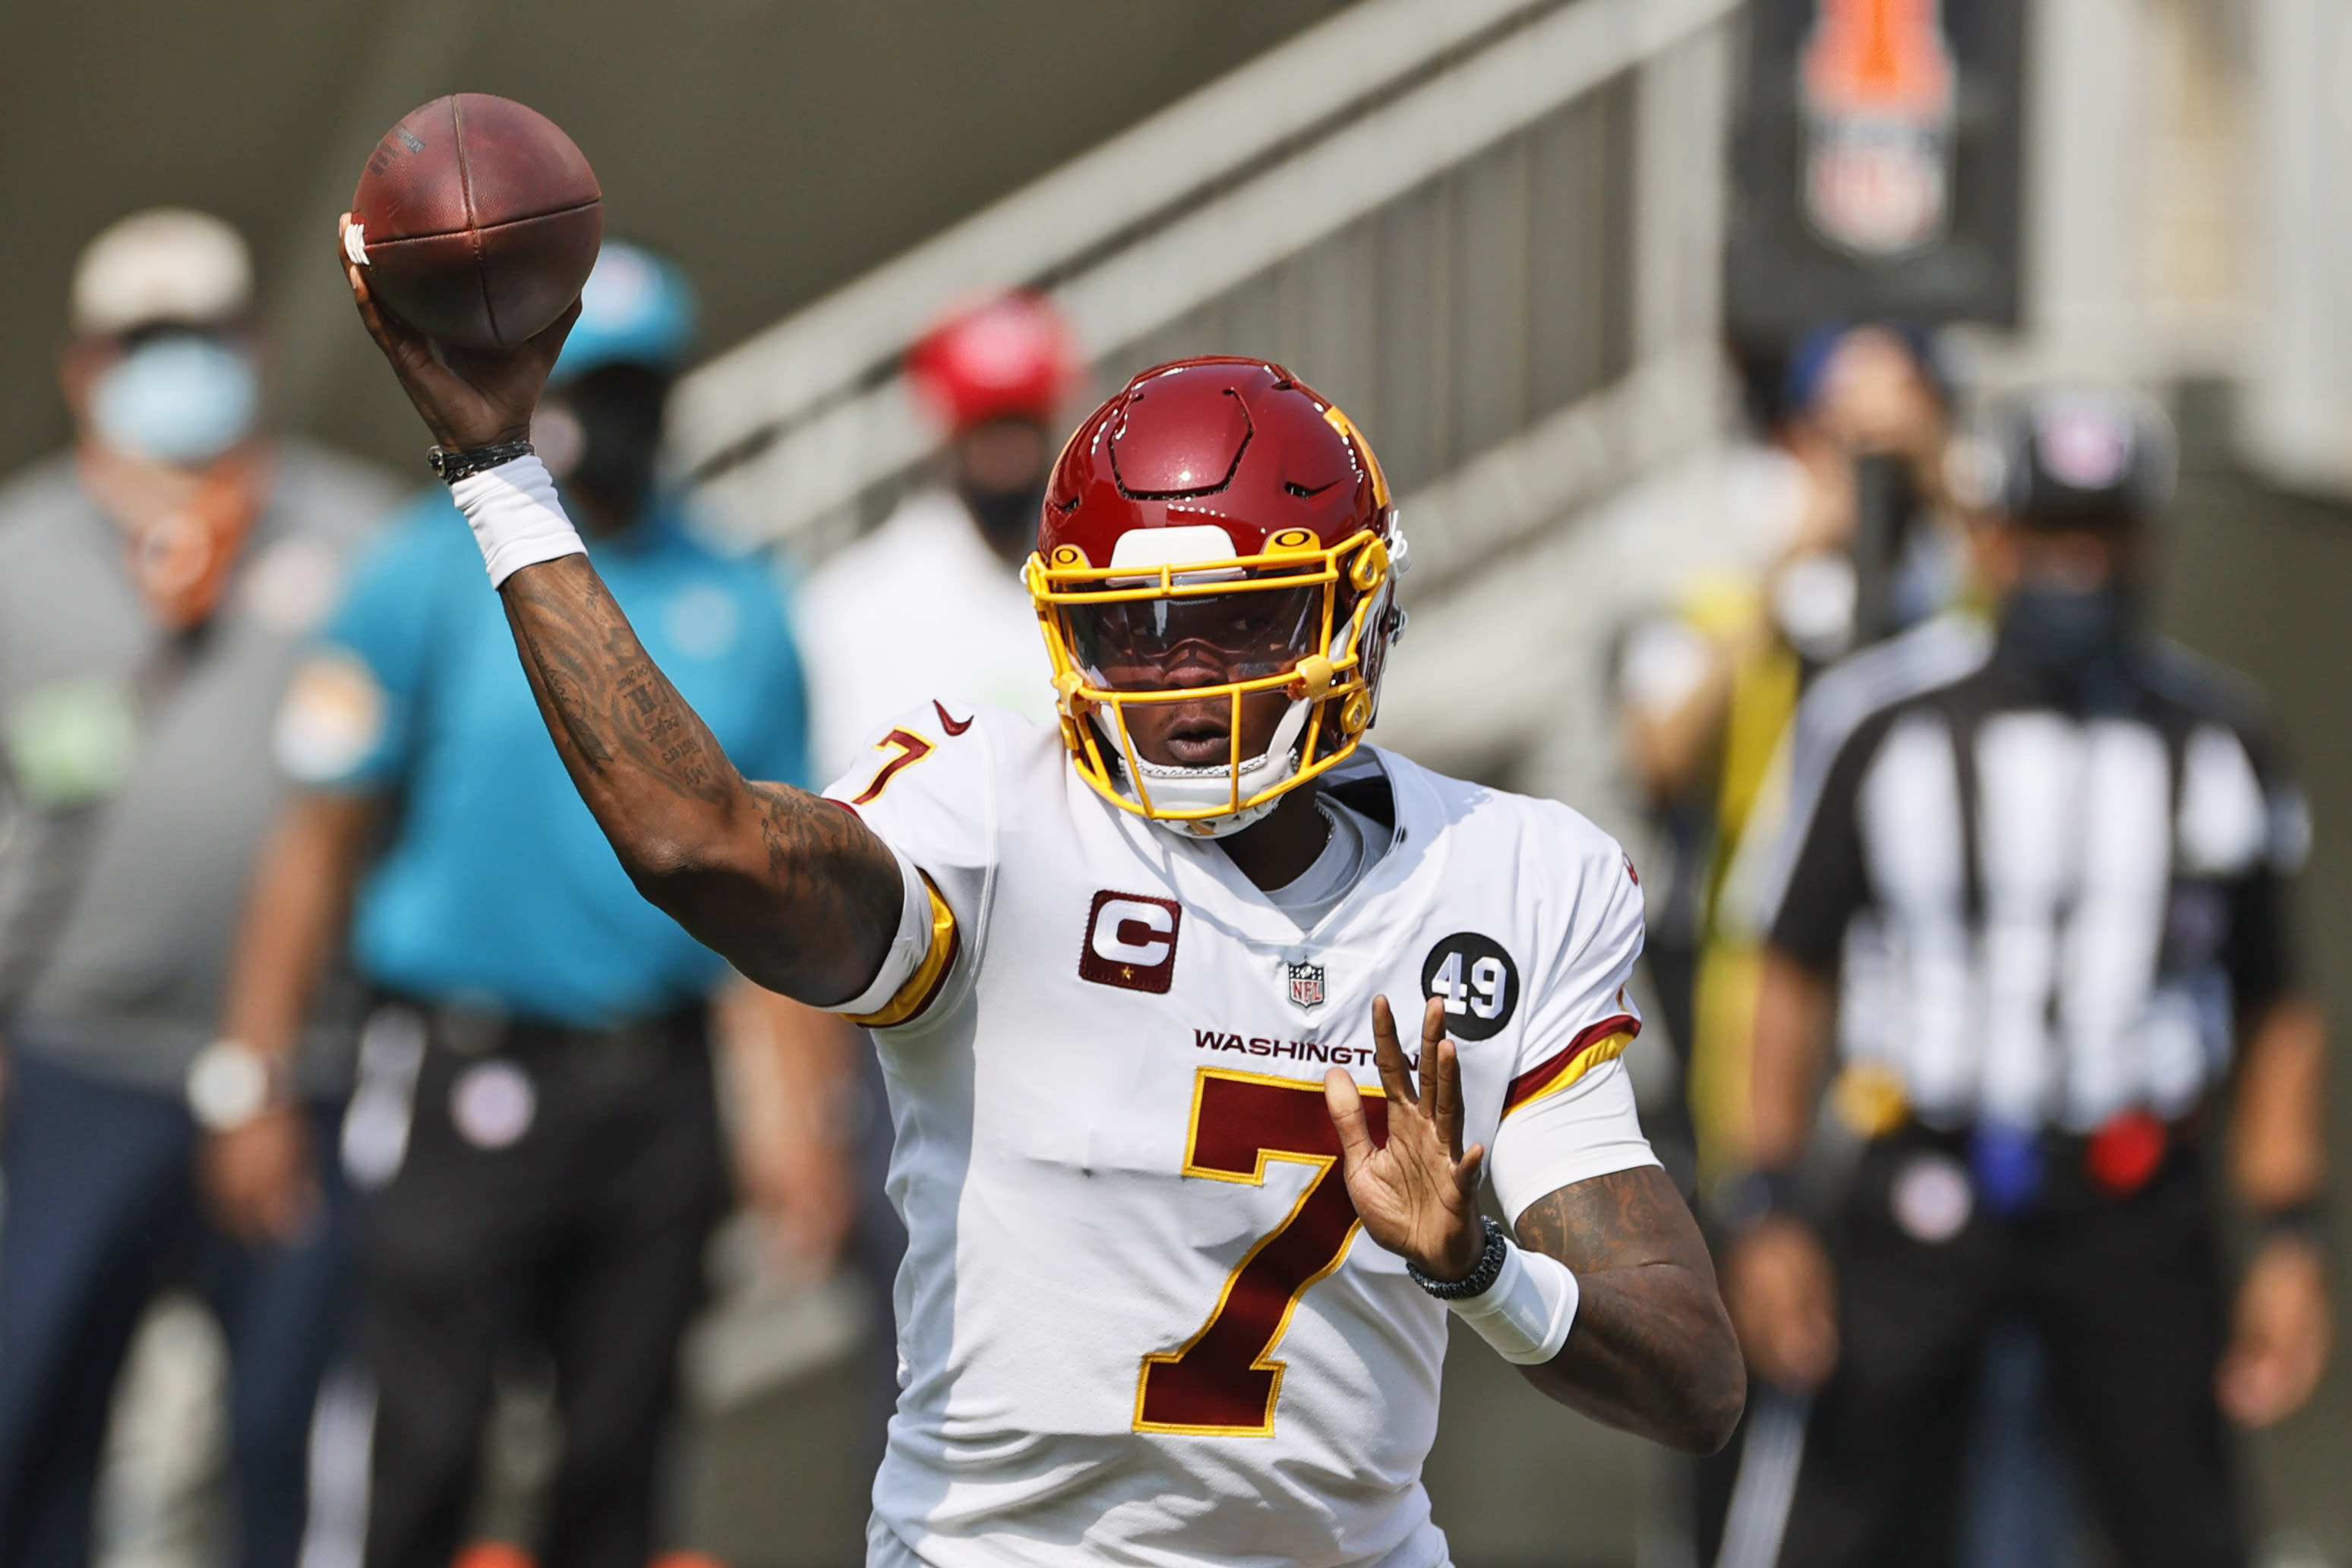 Washington Football Team quarterback Dwayne Haskins throws during the first half of an NFL football game against the Cleveland Browns, Sunday, Sept. 27, 2020, in Cleveland. (AP Photo/Ron Schwane)